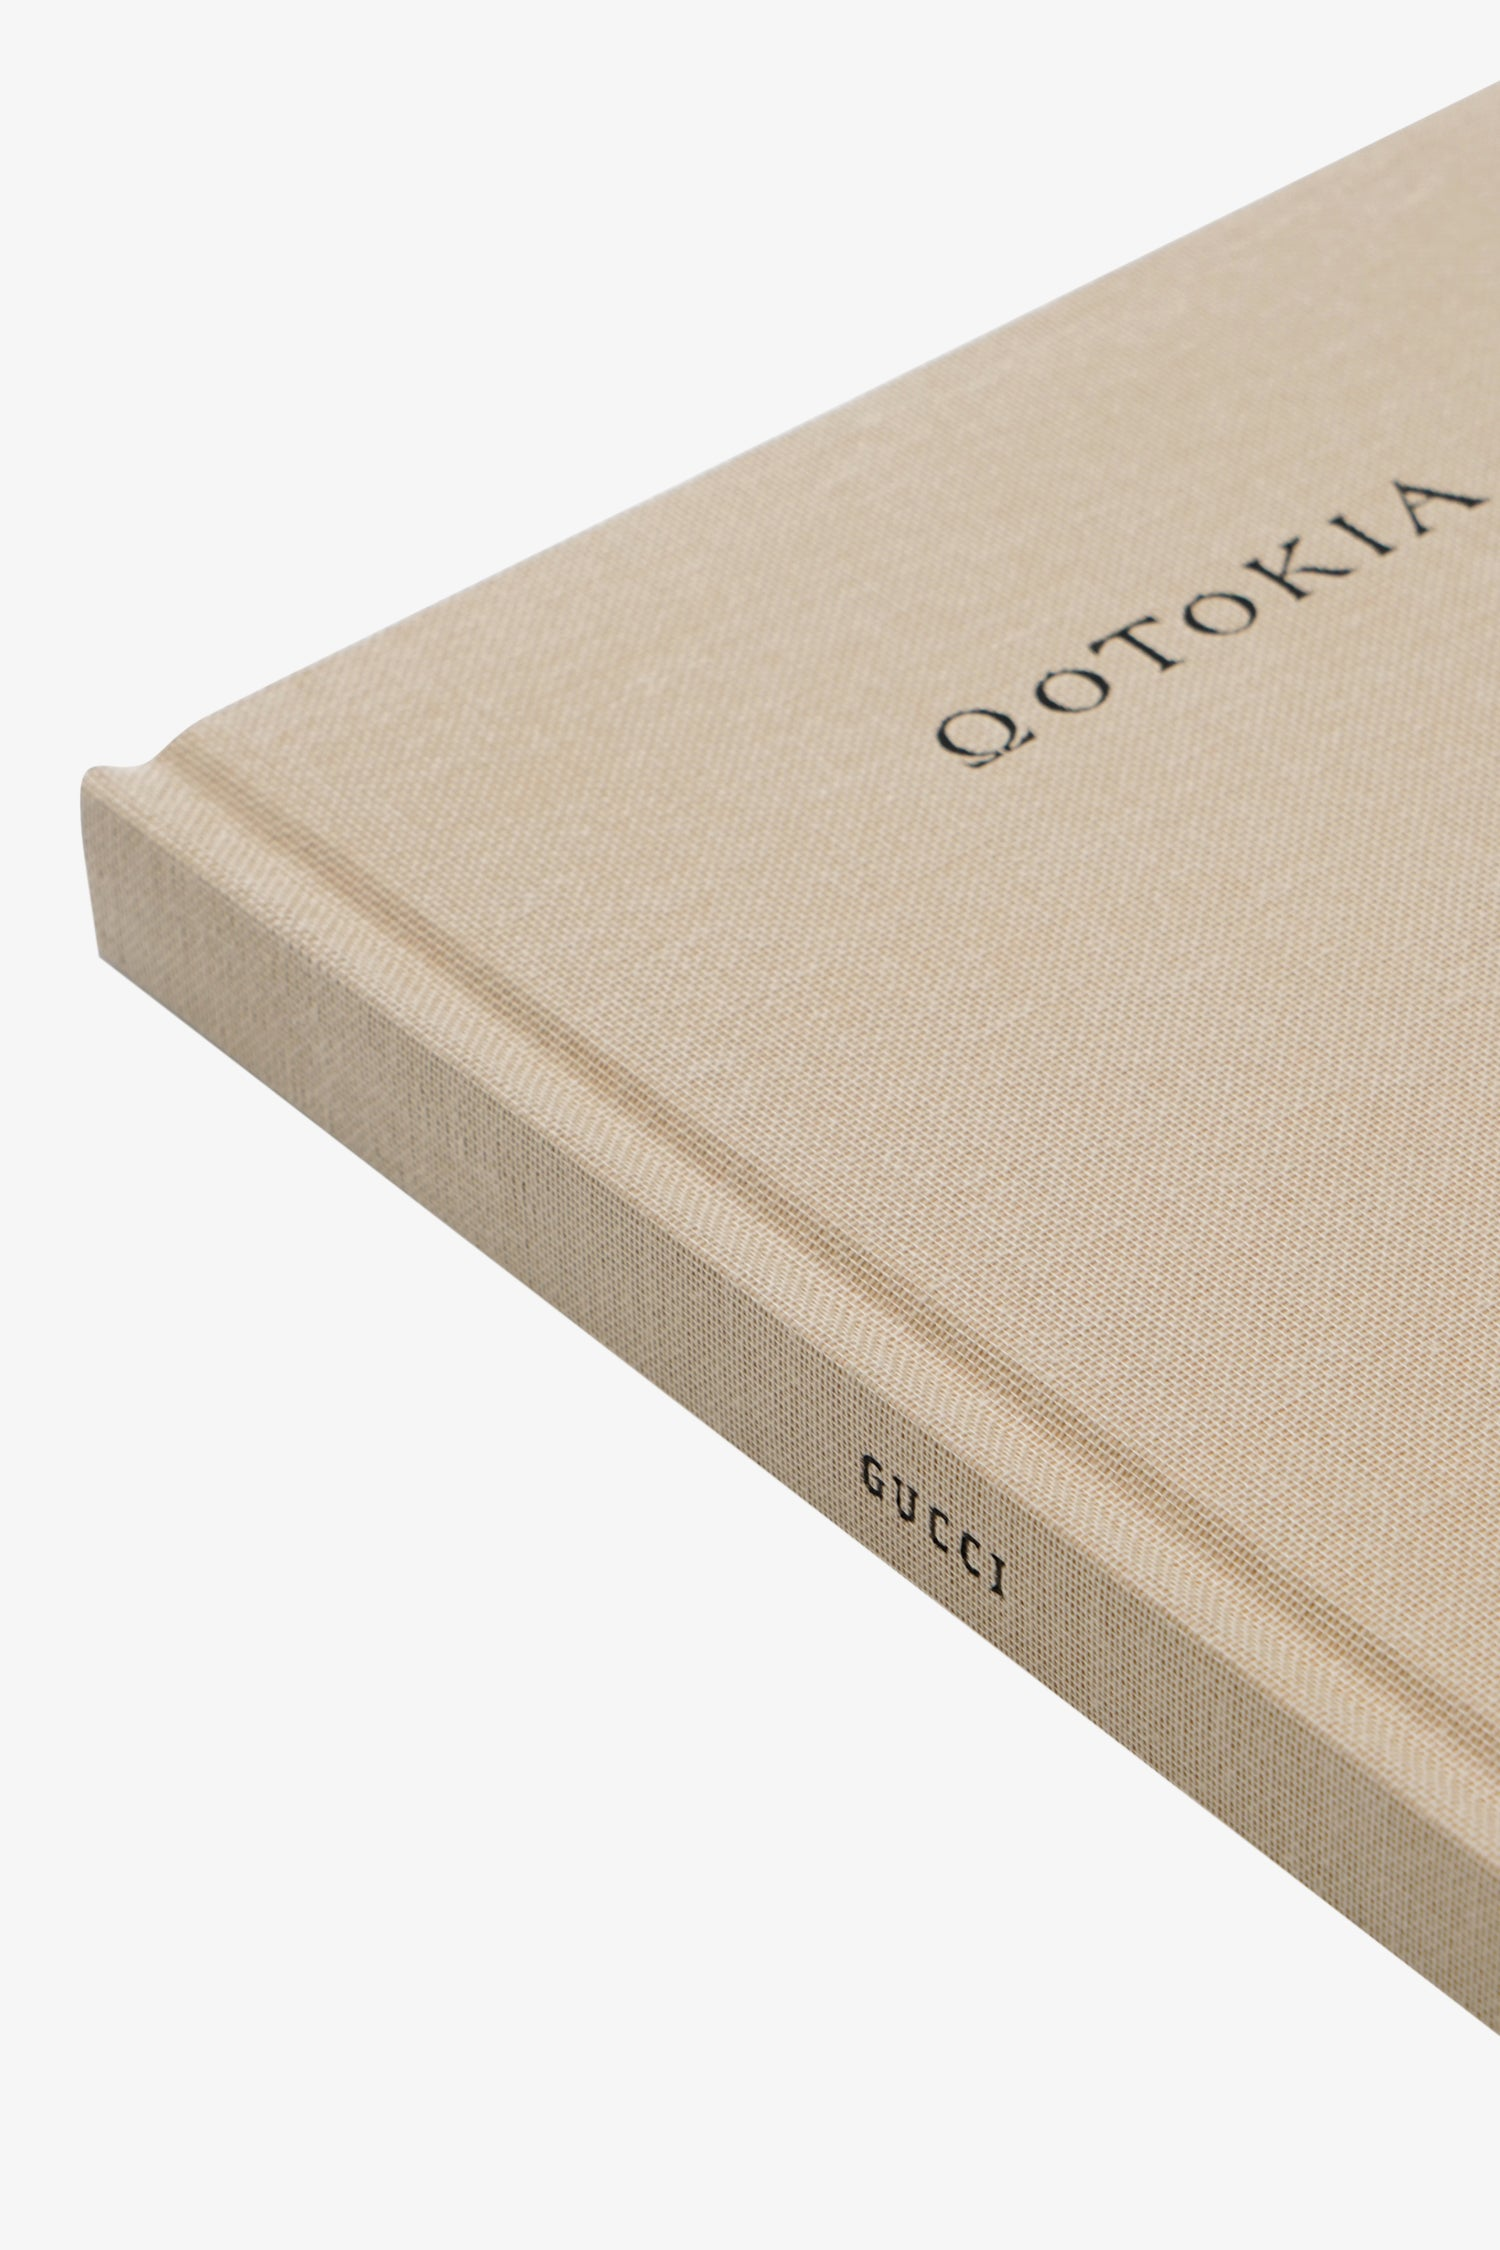 Selectshop FRAME - FRAME BOOK Gucci Oviparity by Yorgos Lanthimos Book Dubai